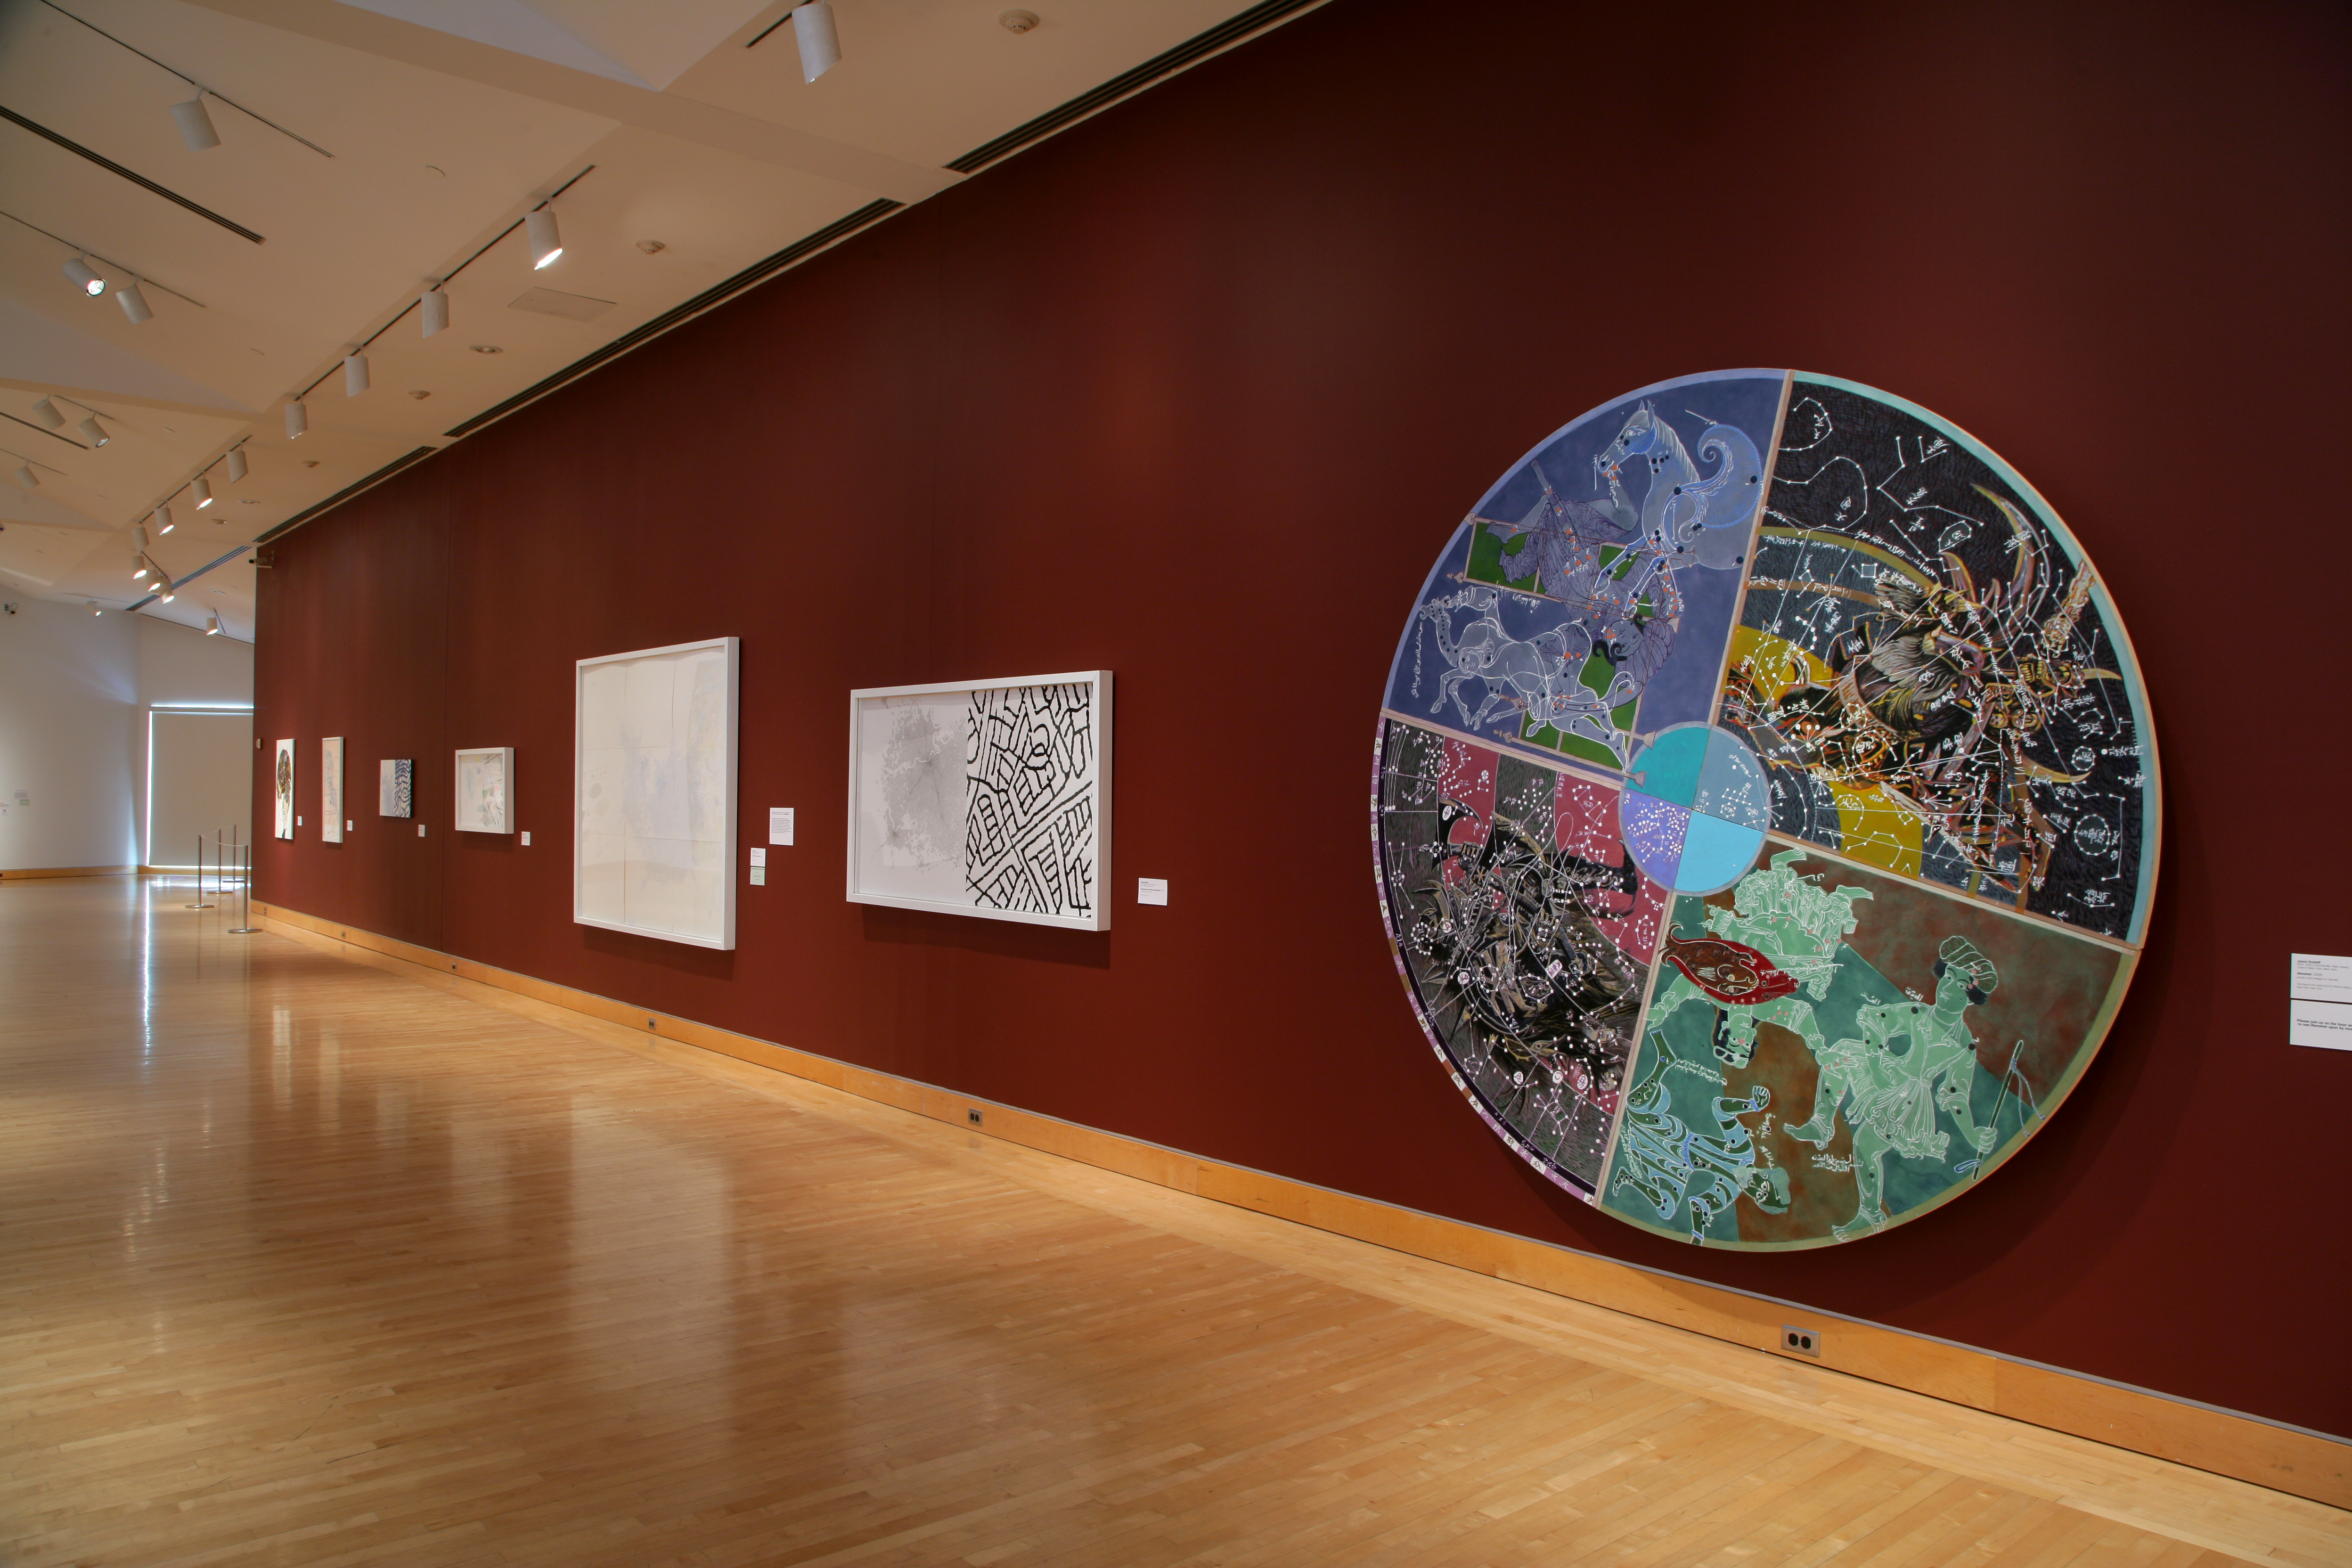 The map as art kemper museum of contemporary art installation view of the map as art in the charlotte and crosby kemper gallery kemper museum of contemporary art photo bruce mathews gumiabroncs Image collections